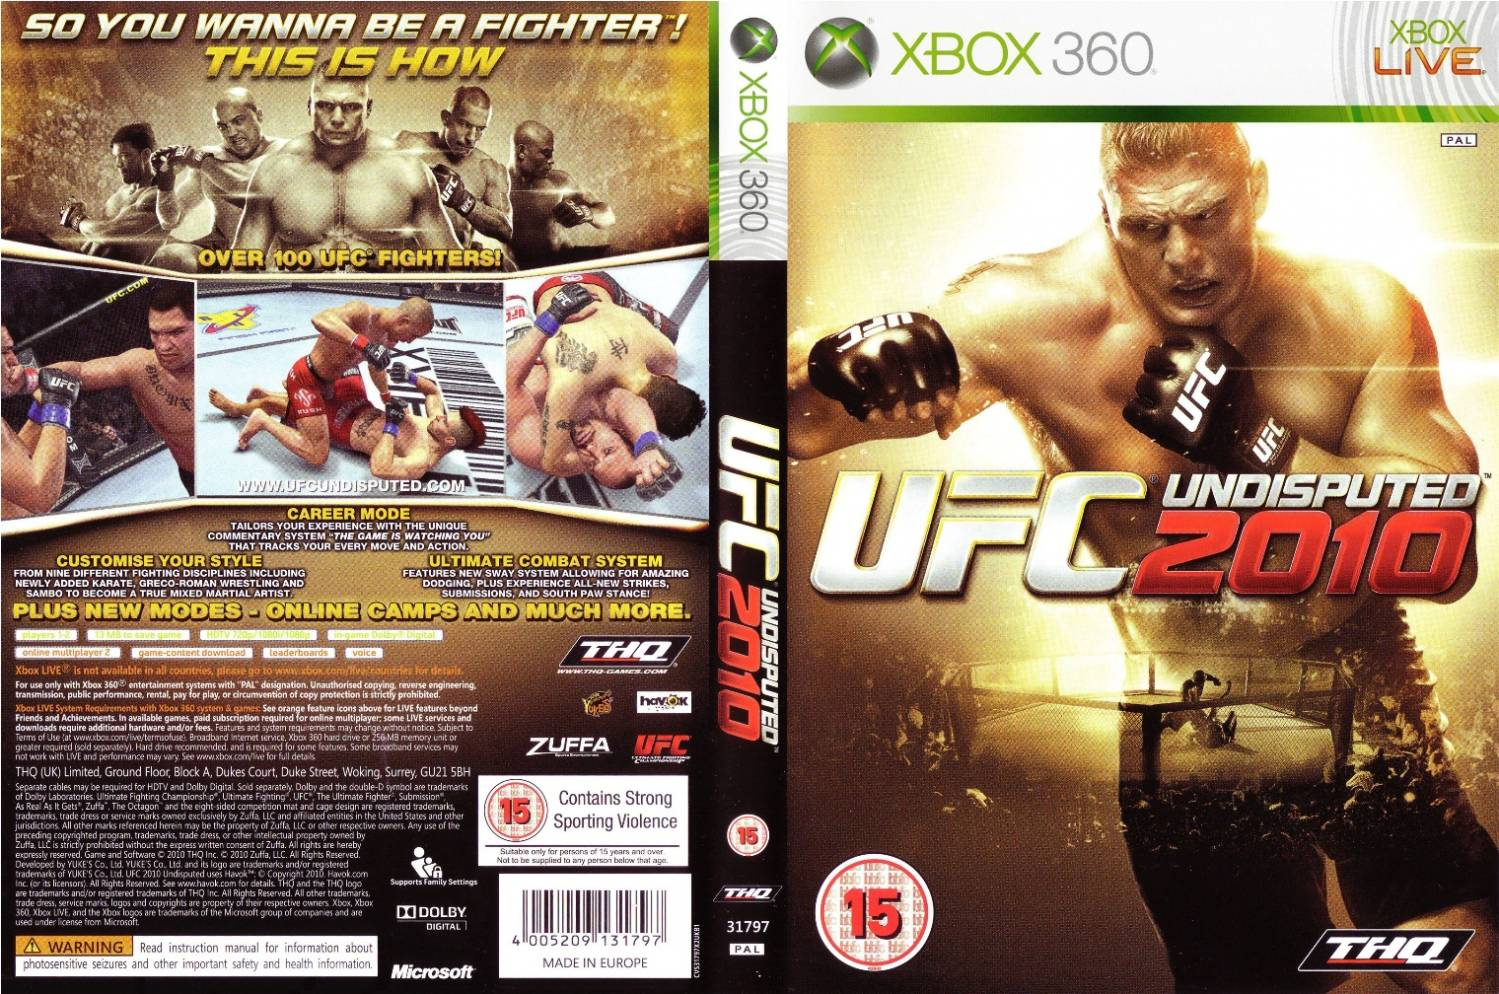 Amazon.com Product Description UFC Undisputed 3 is a mixed martial arts (MM